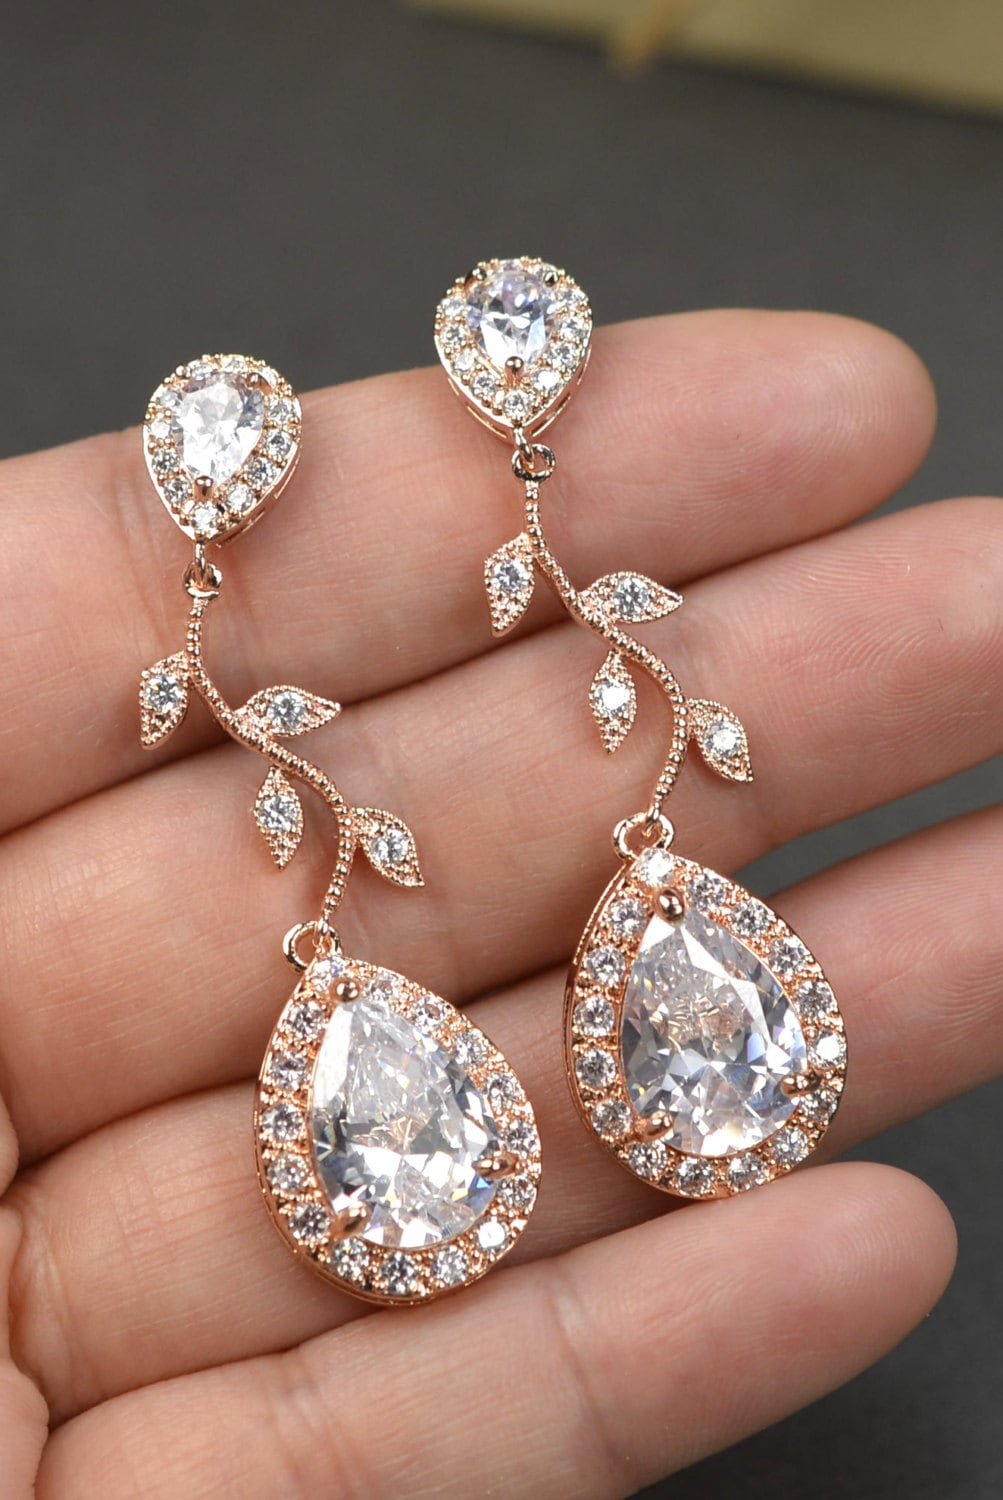 Rose Gold Crystal Bridal Earrings Wedding Jewelry Set Wedding